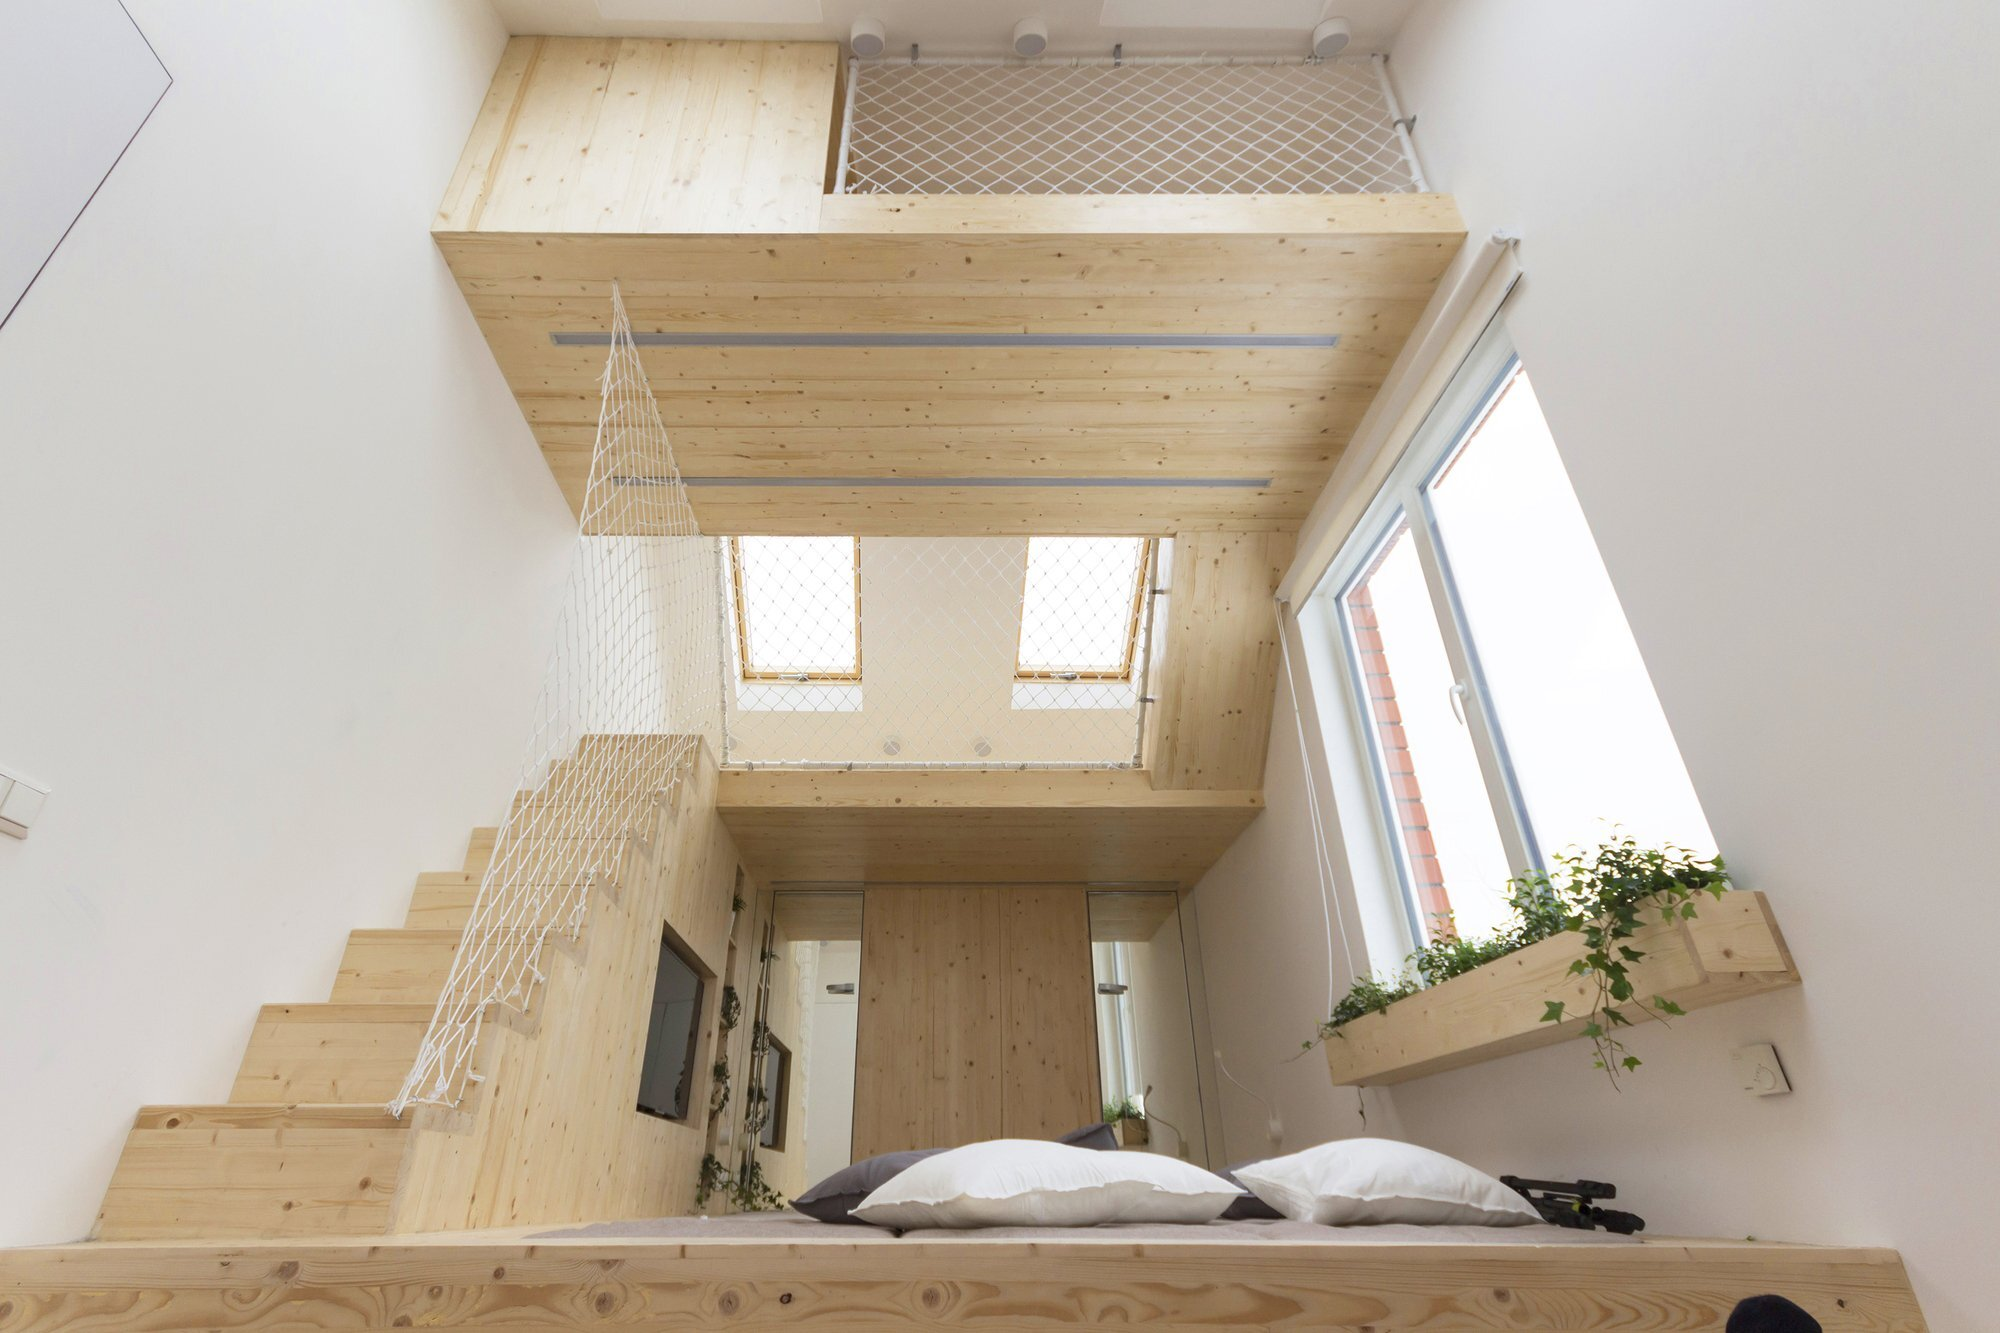 Sleep and Play - Multifunctional Spaces - Ruetemple - Moscow - Bedroom and Loft 2 - Humble Homes